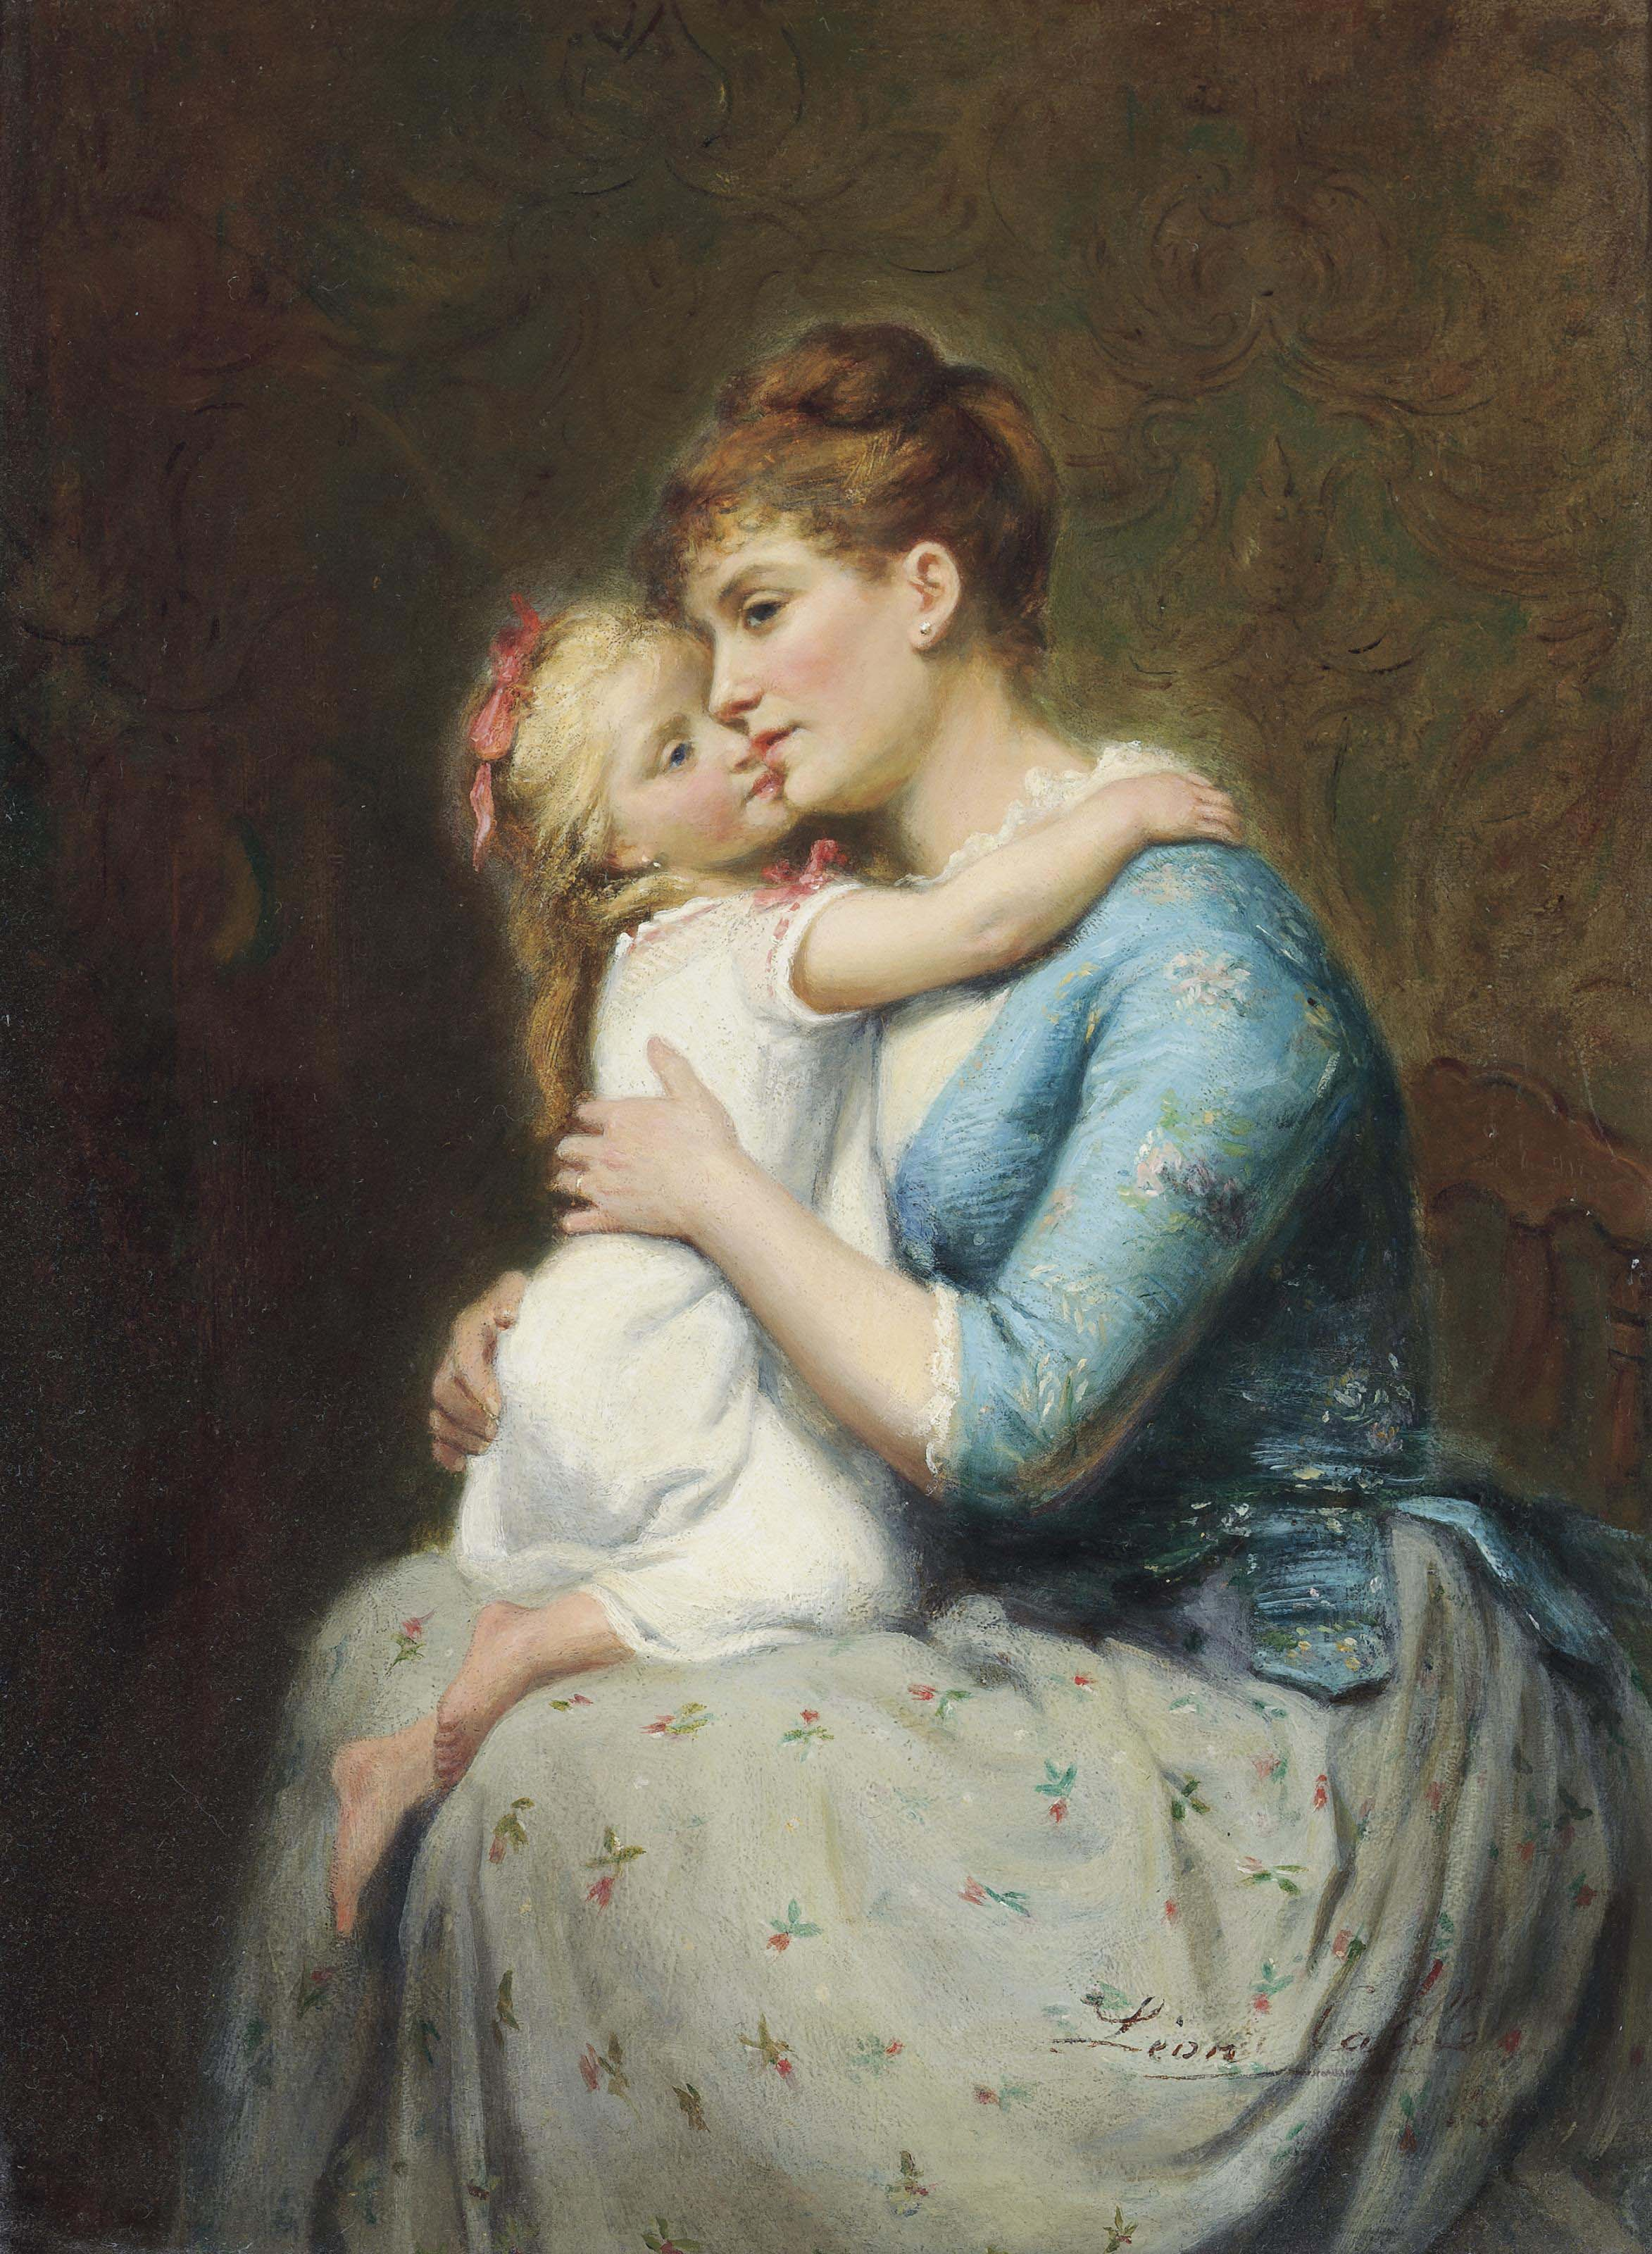 Léon Emile Caille (French, 1836-1907)